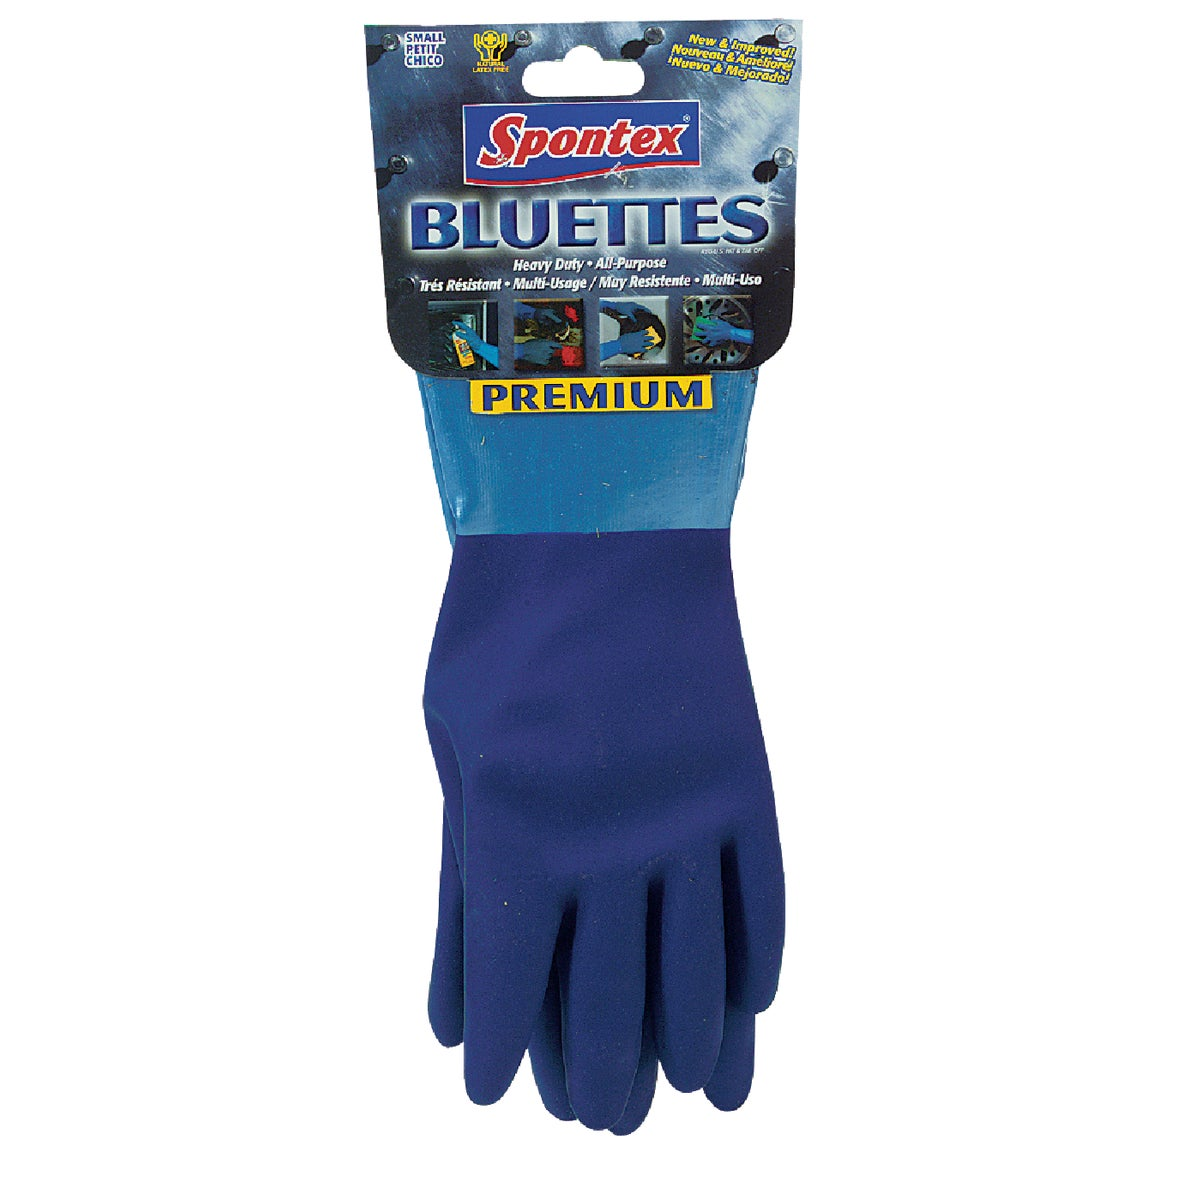 SMALL RUBBER GLOVES - 17005 by Lehigh Spontex